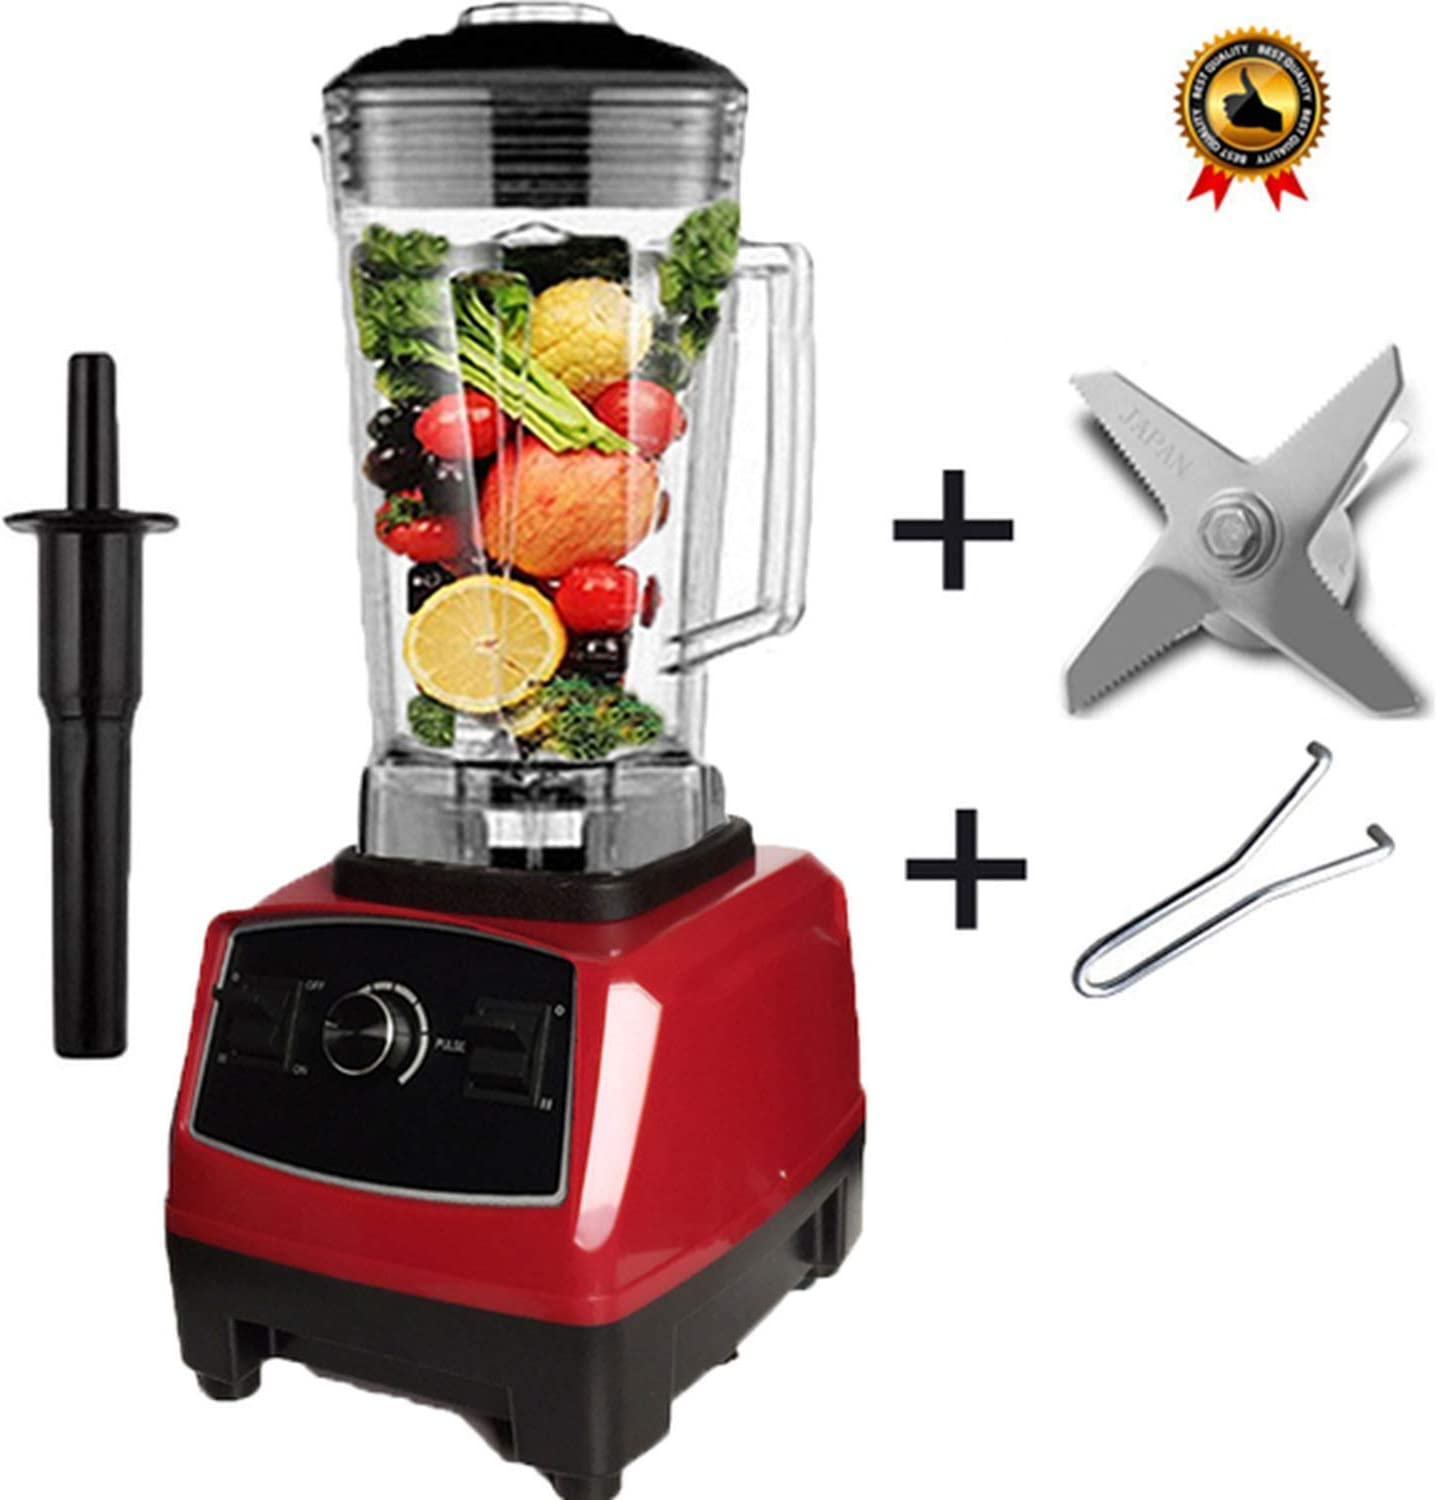 BPA free 2200W Heavy Duty Commercial Blender Professional Blender Mixer Food Processor Japan Blade Juicer Ice Smoothie Machine,Red blade tool